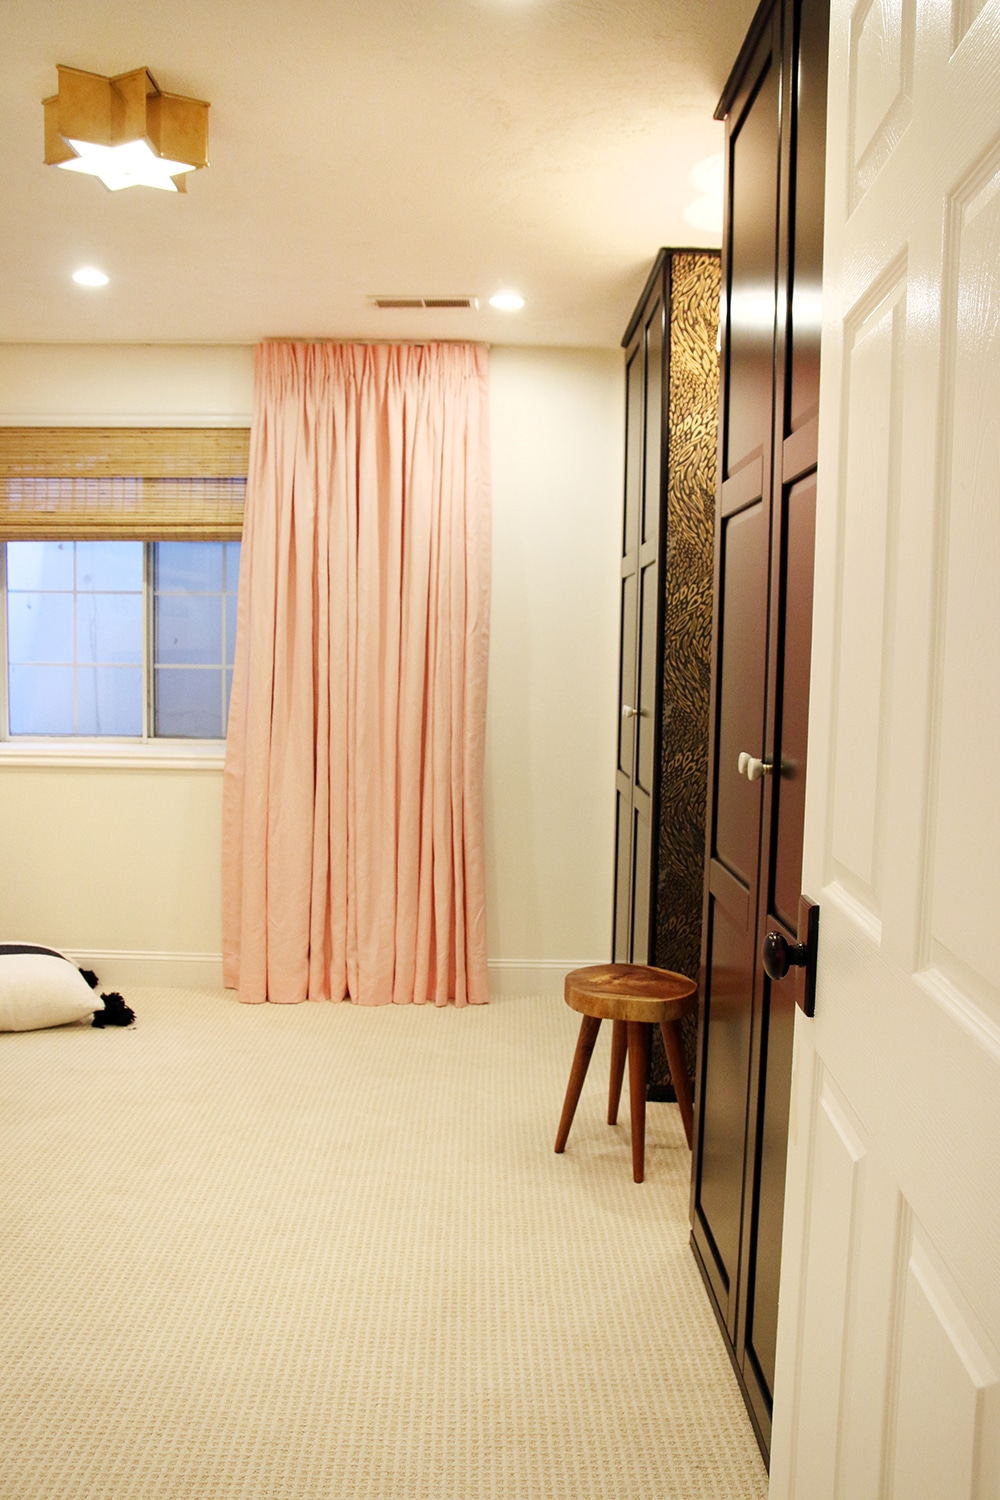 Floor to ceiling pale pink curtains